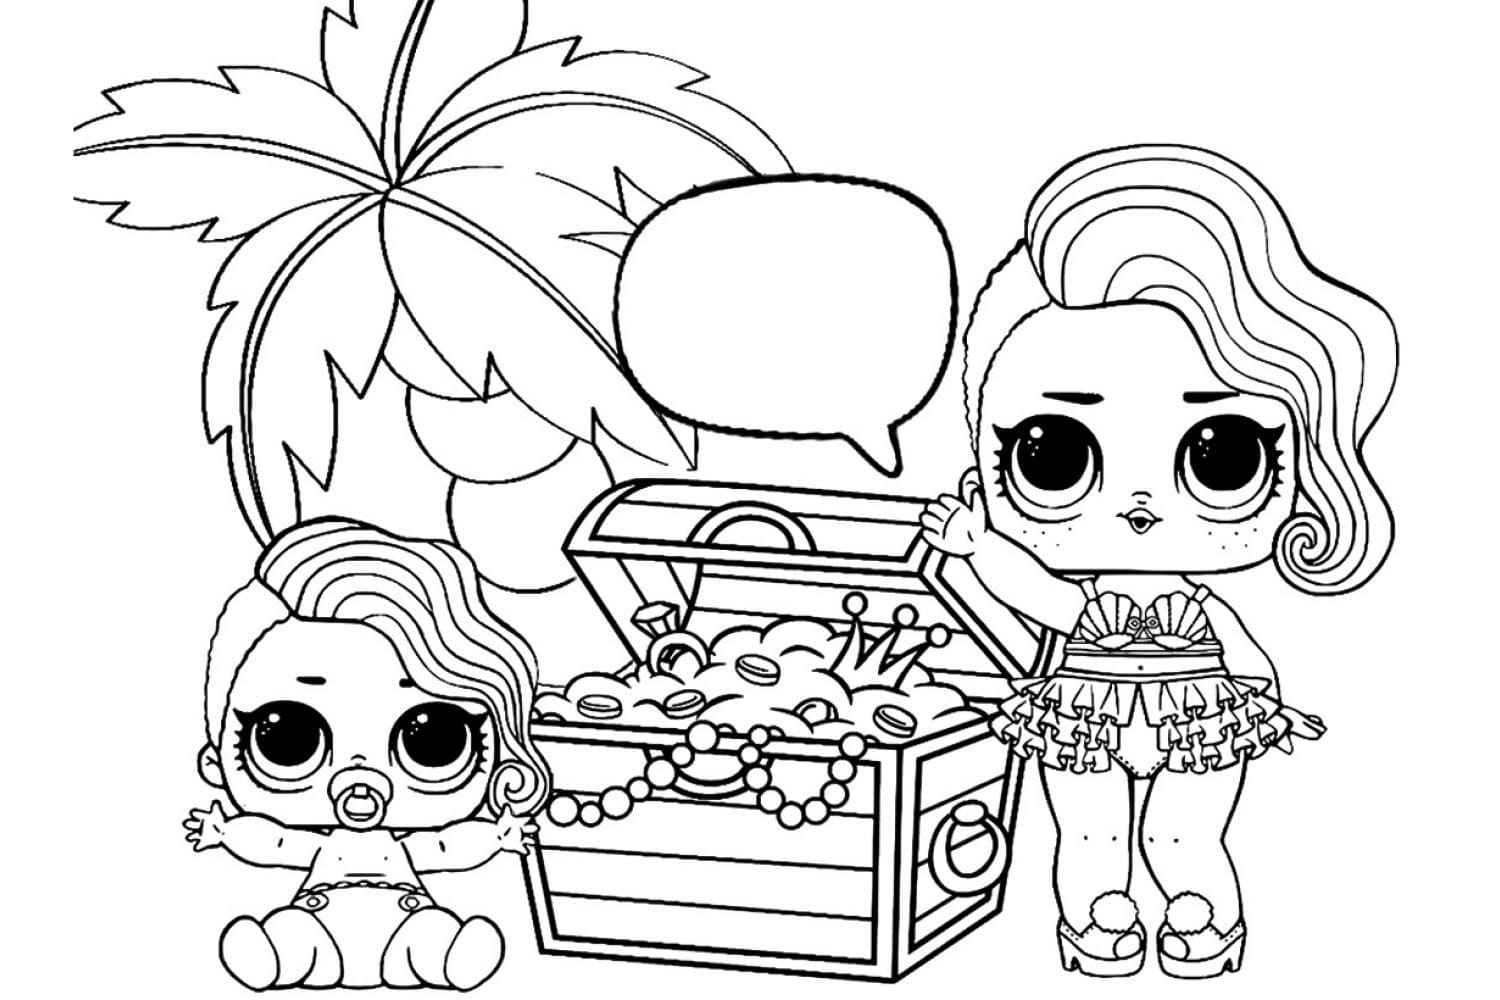 LOL Omg Coloring Pages - Coloring Home